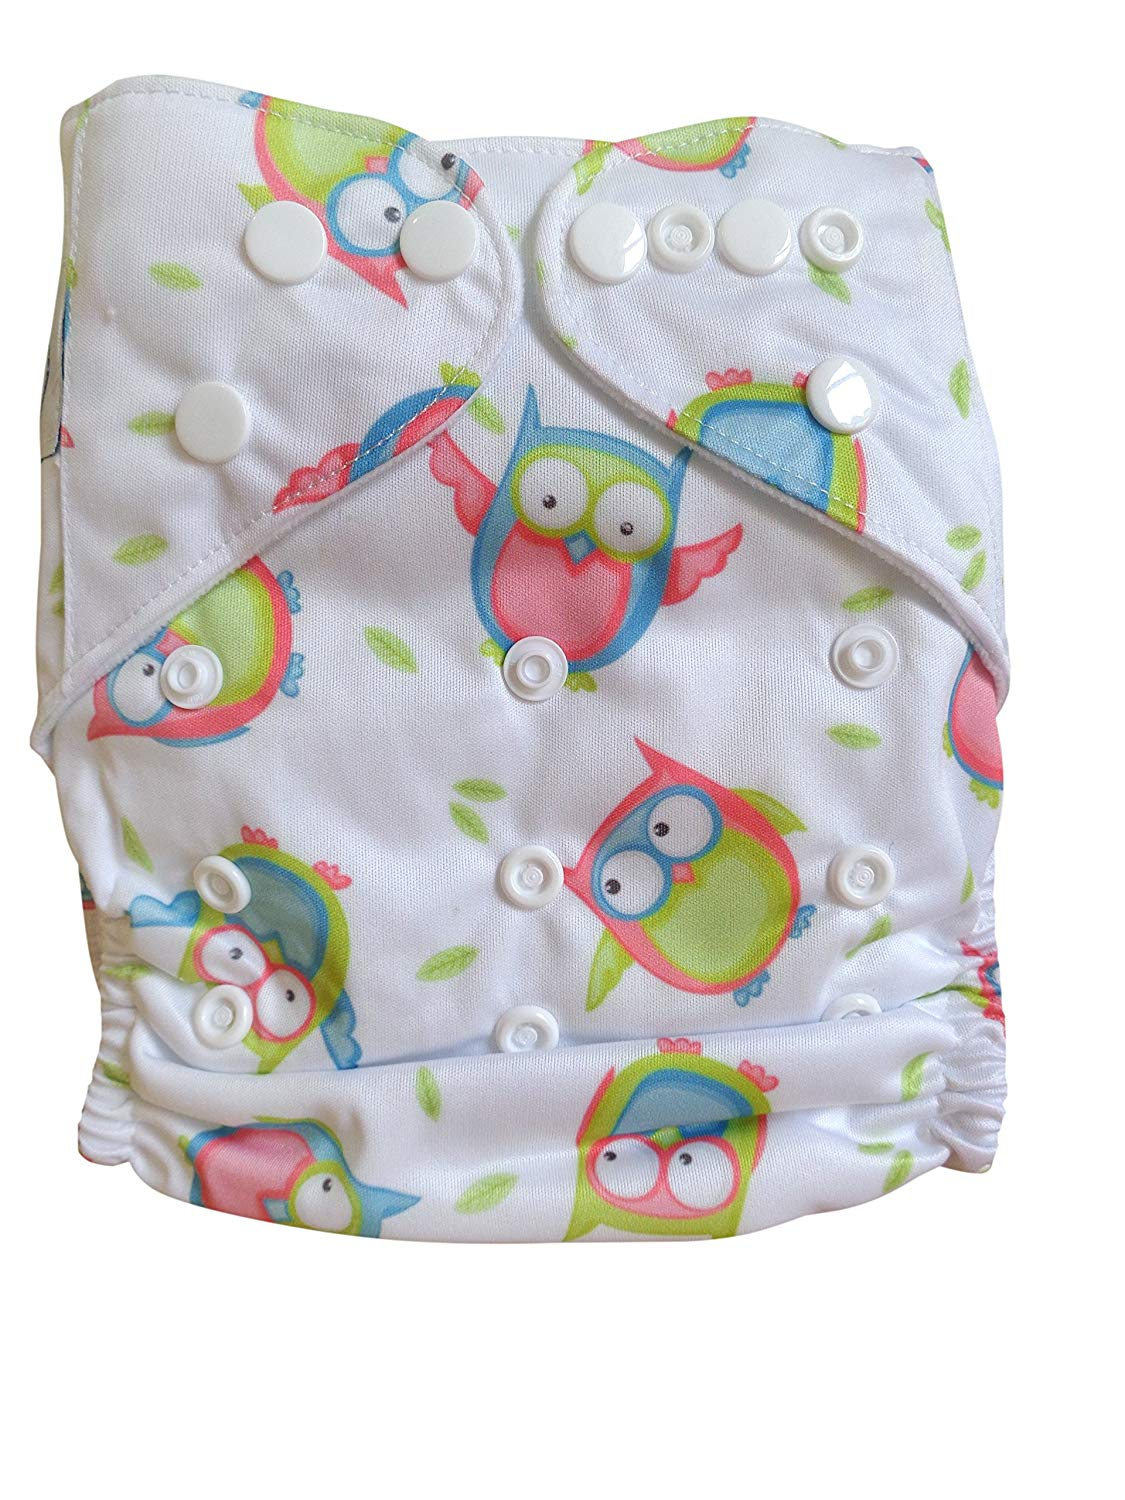 Three Little Imps Unisex Patterned Cloth Nappies inc 2 inserts each Set of 12